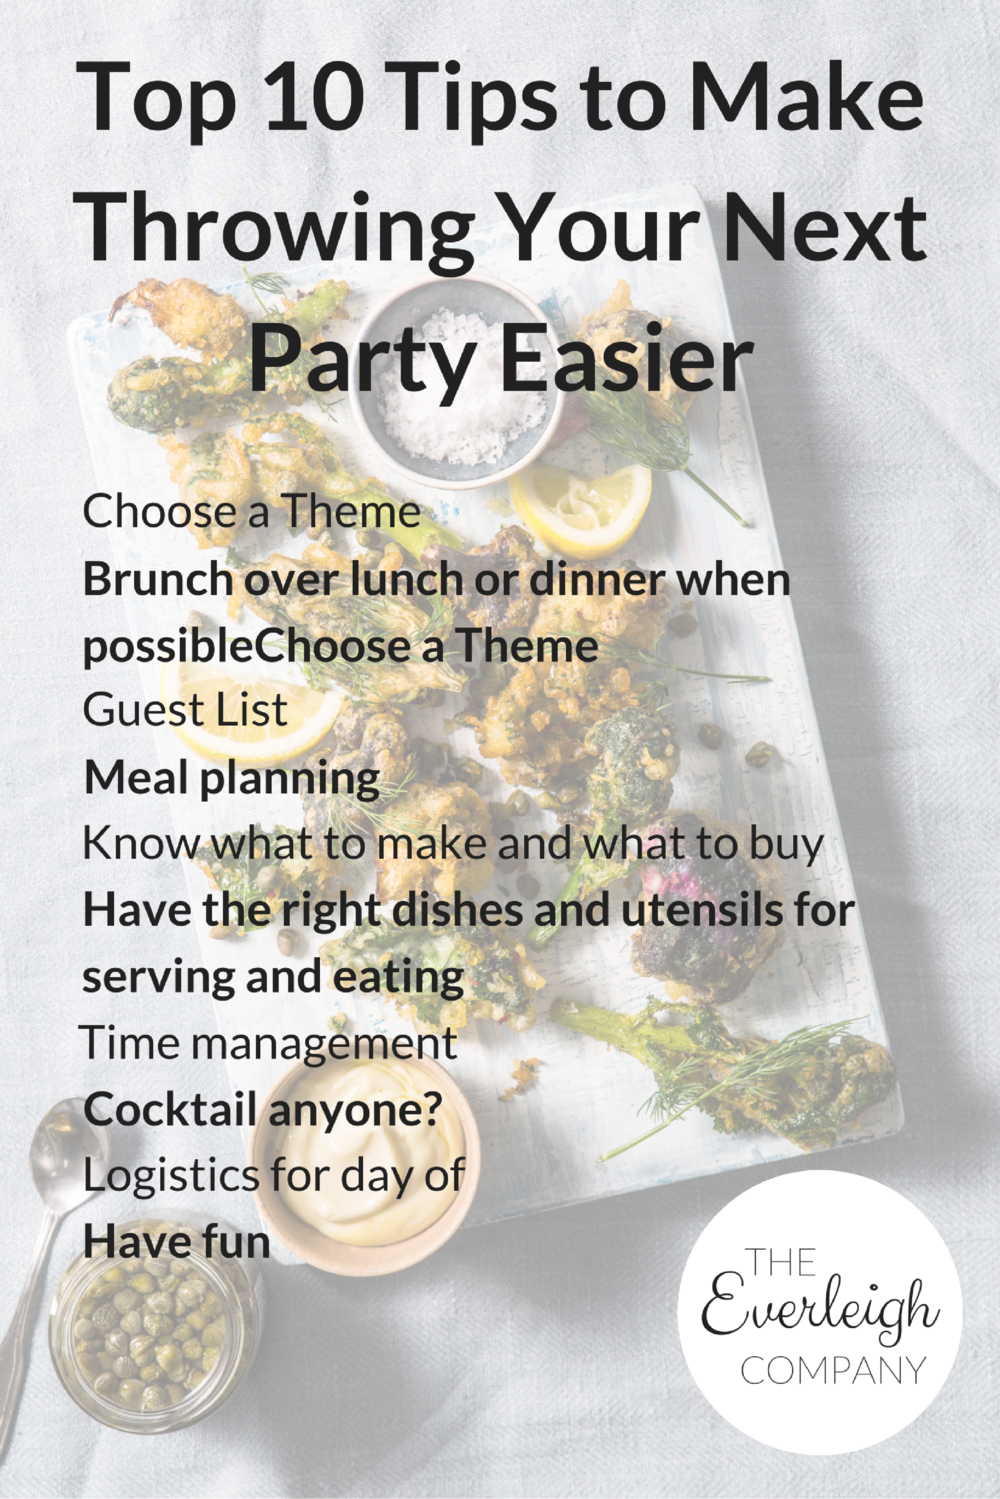 Top 10 tips to hospitality Everleigh Company